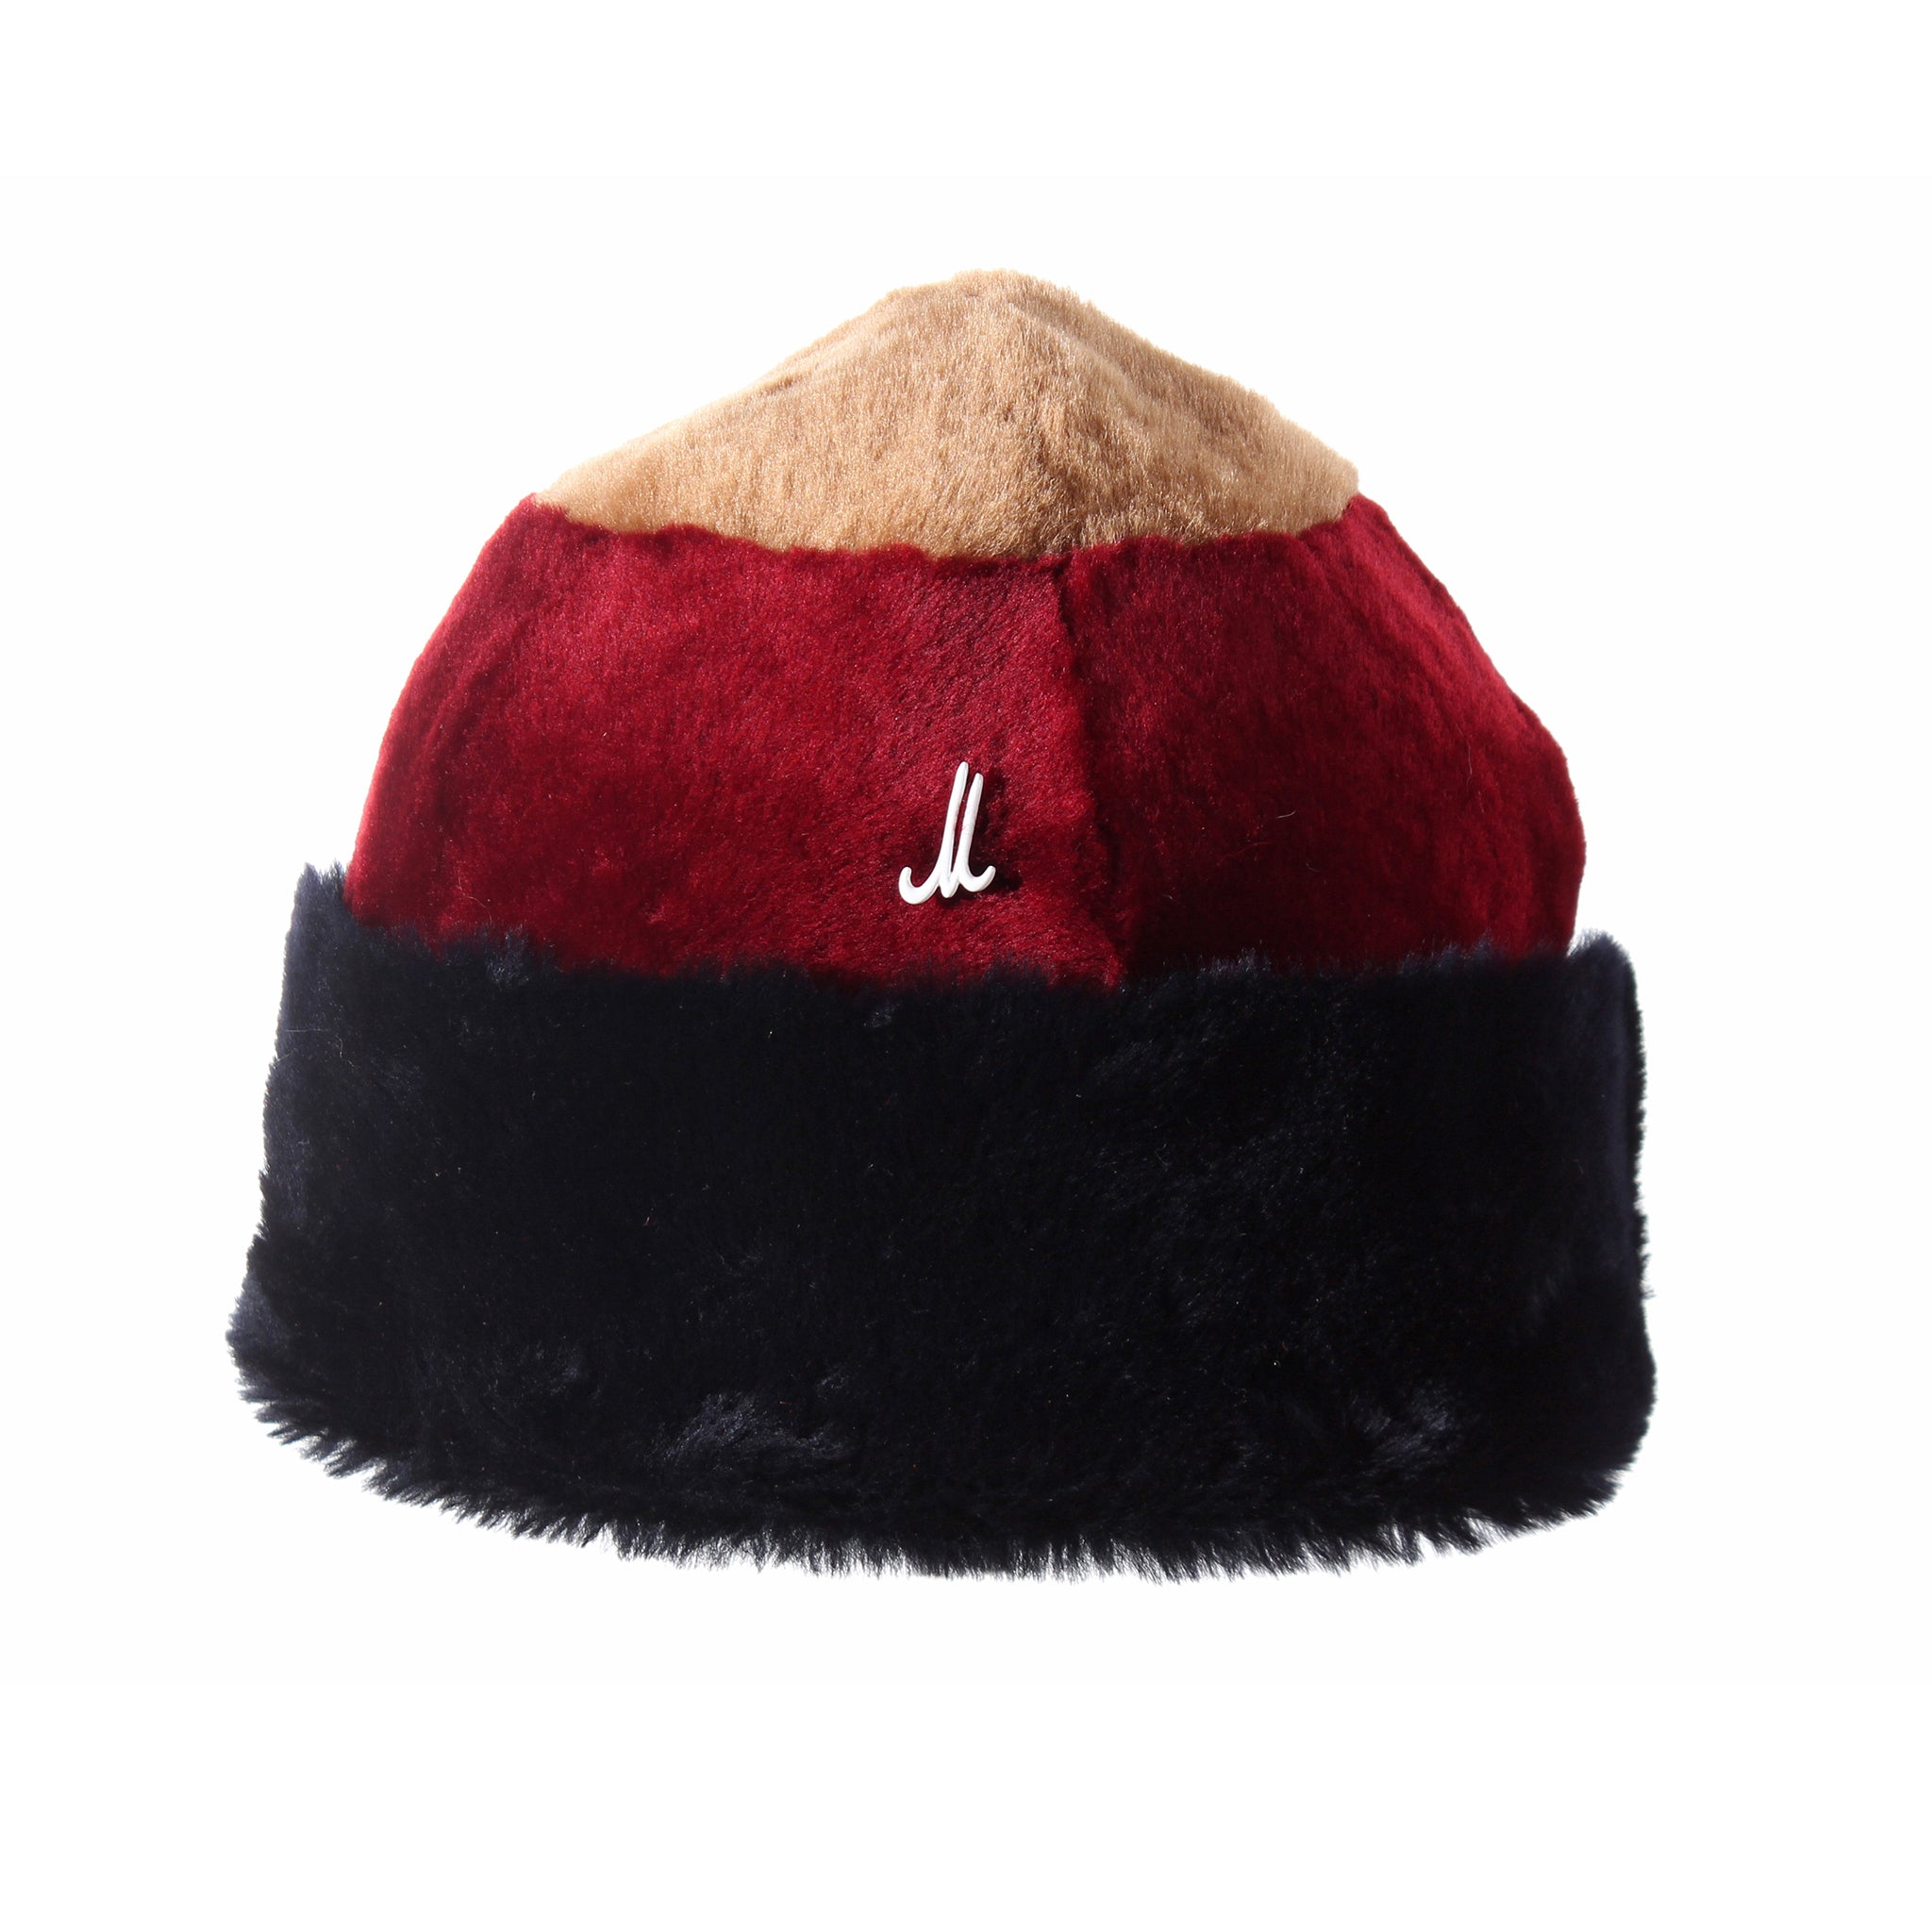 Beanie Hat in Camel, Dark Red and Dark Blue